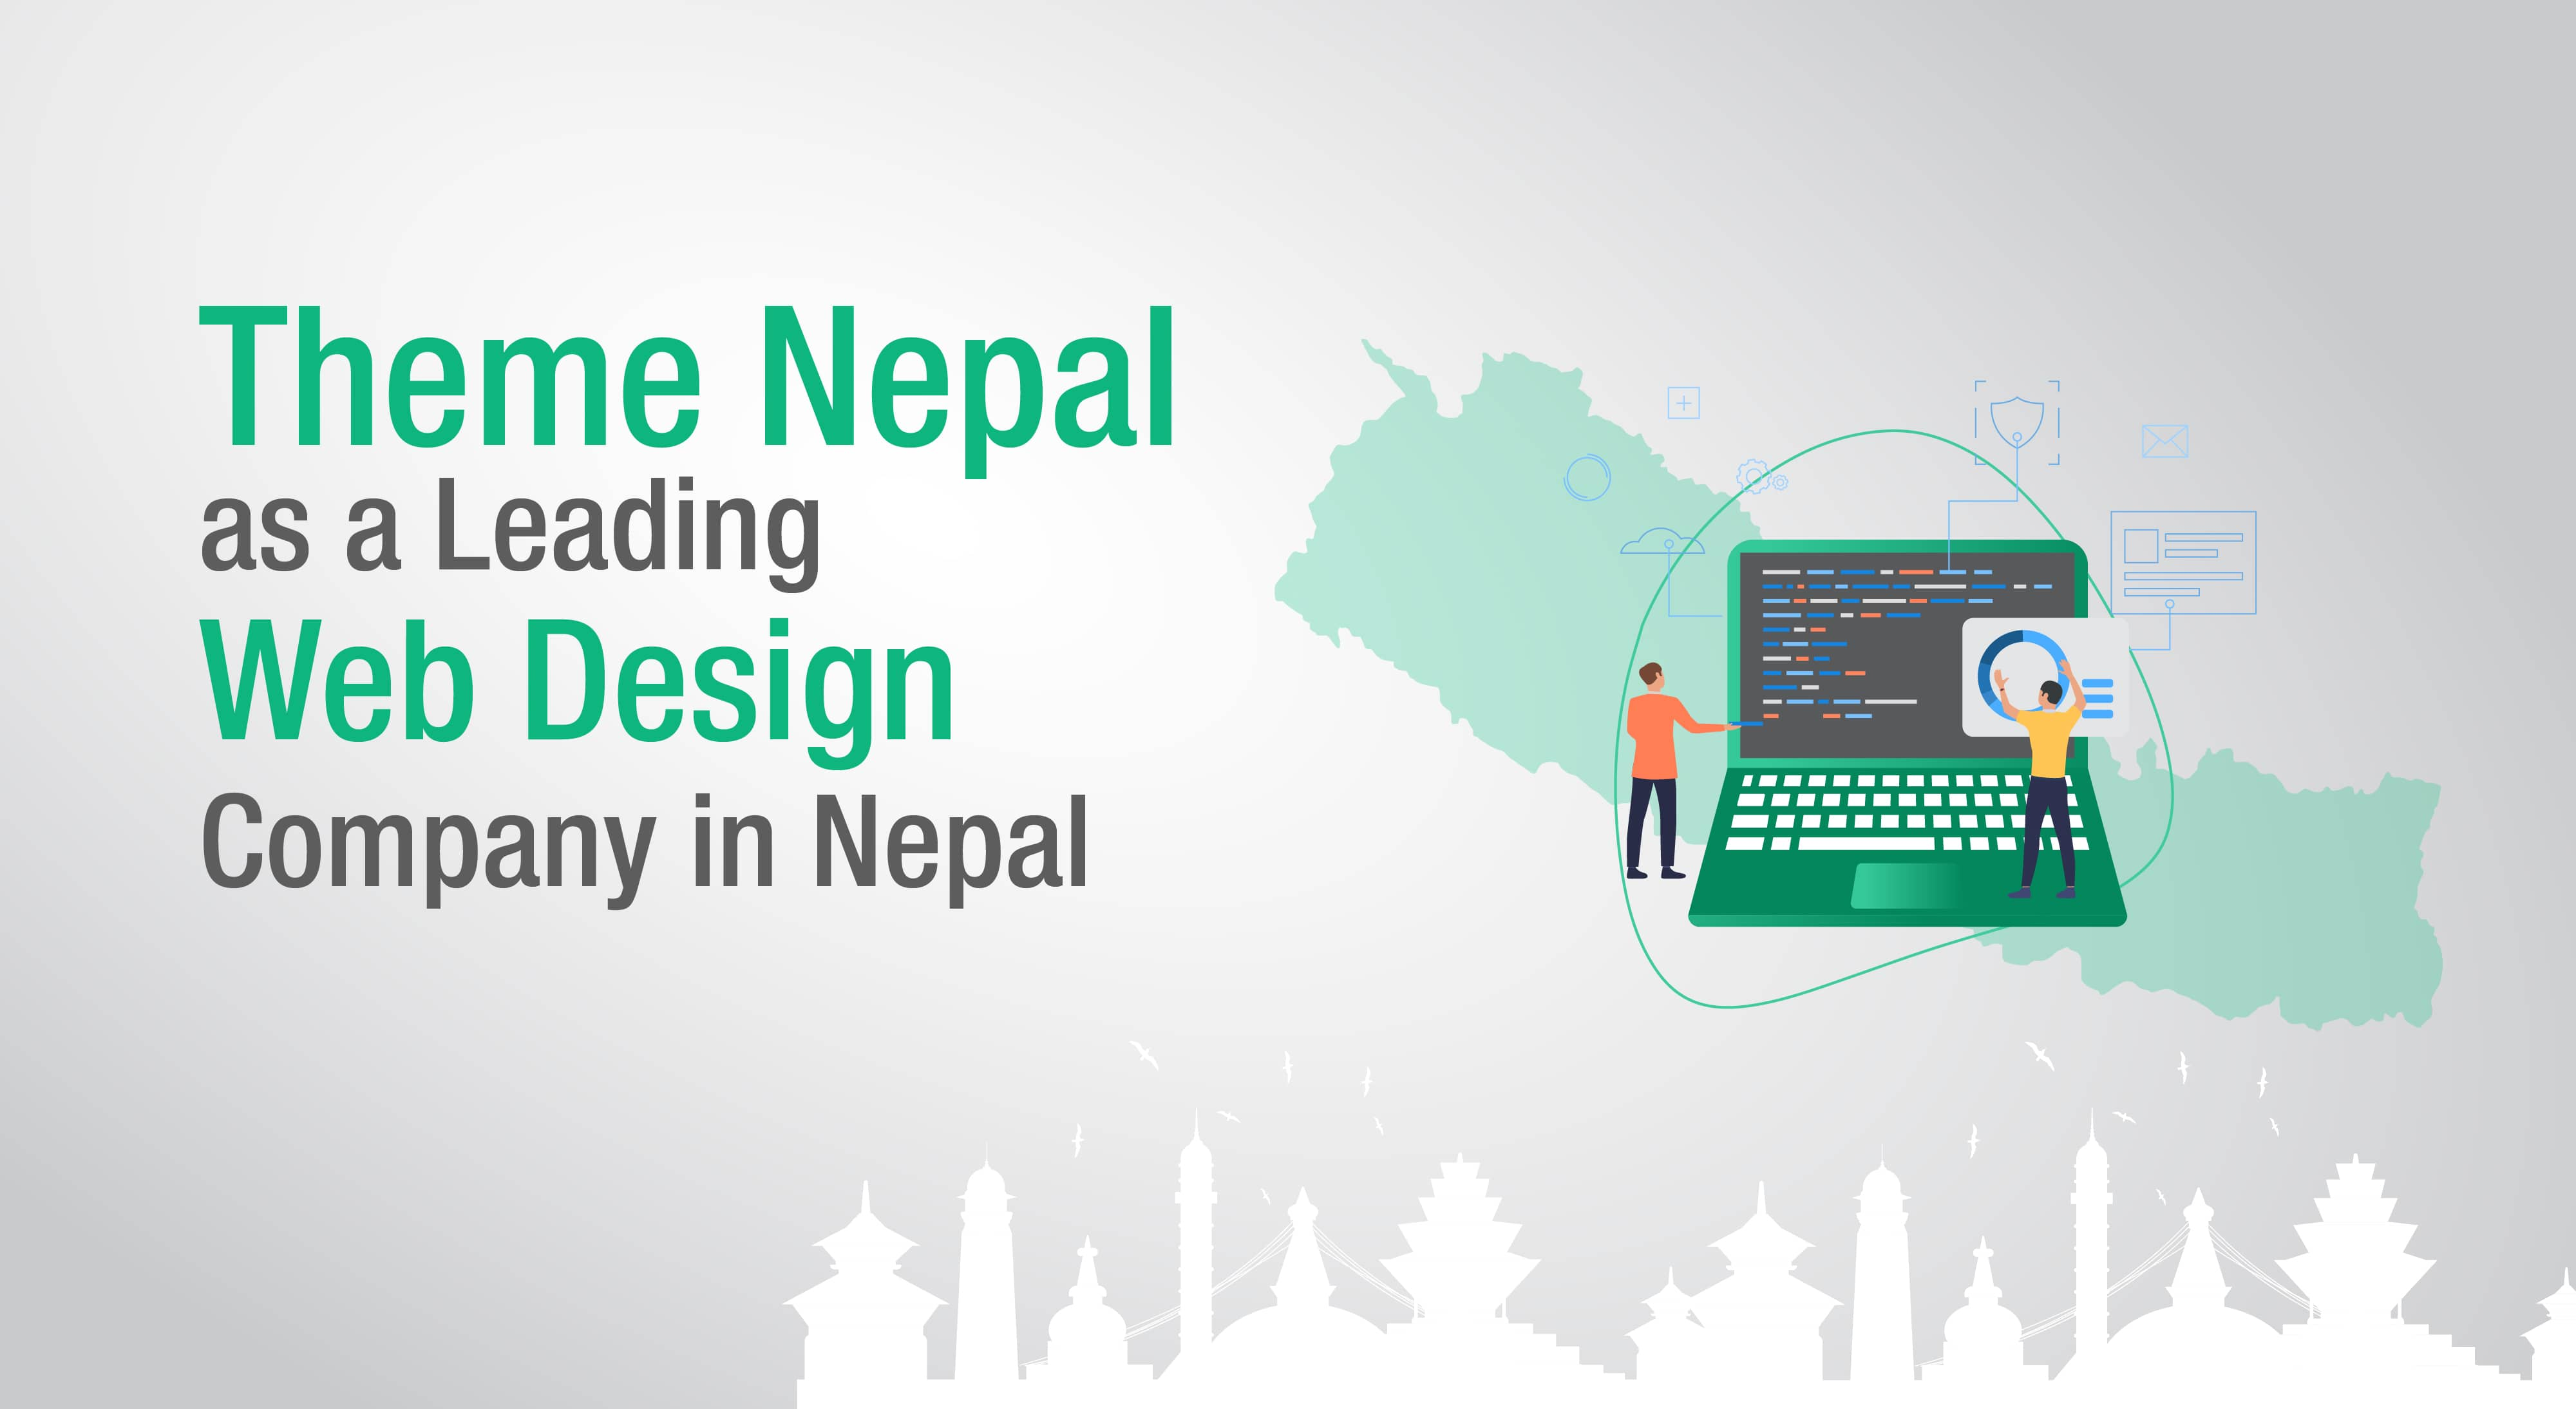 theme nepal as a leading web design company in nepal